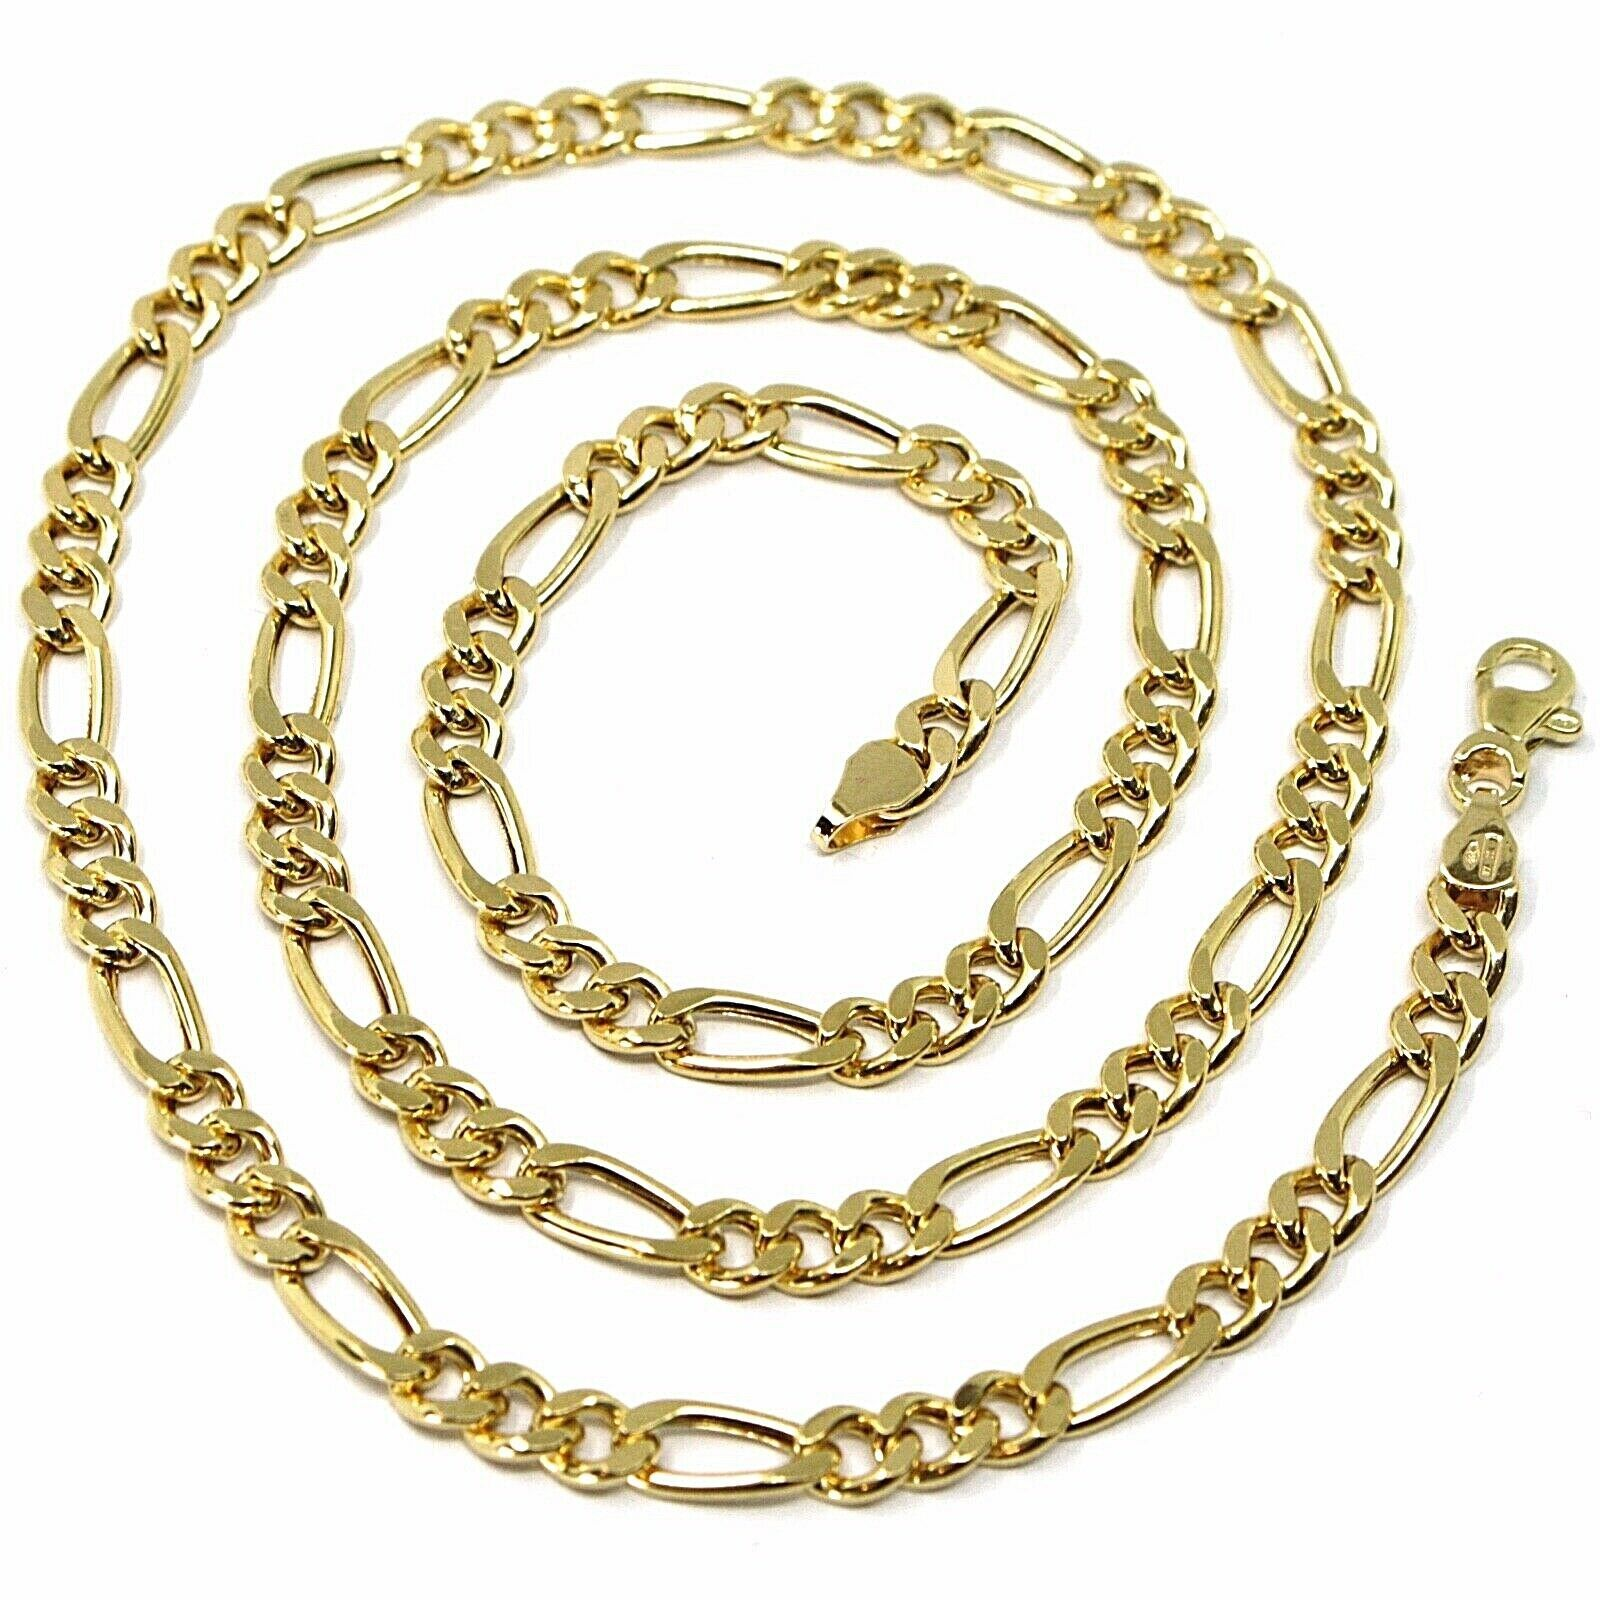 Primary image for 18K YELLOW GOLD CHAIN, BIG 5 MM FIGARO GOURMETTE ALTERNATE 3+1, 20 INCHES